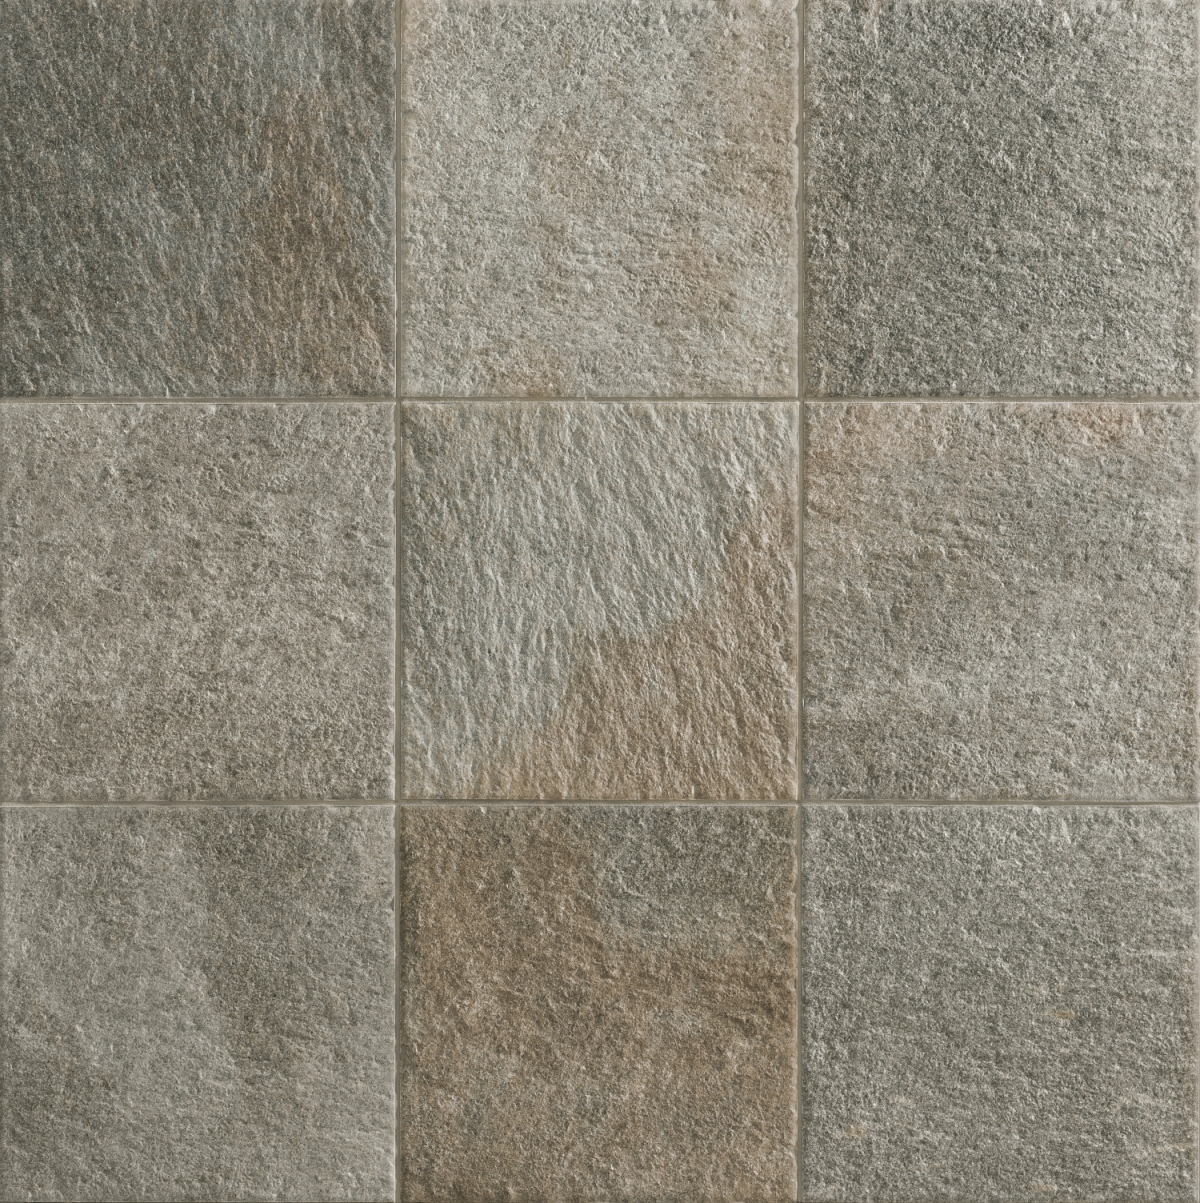 Crossville garden colonnade porcelain tile 12 x 12 gaco1212t for Exterior floor tiles